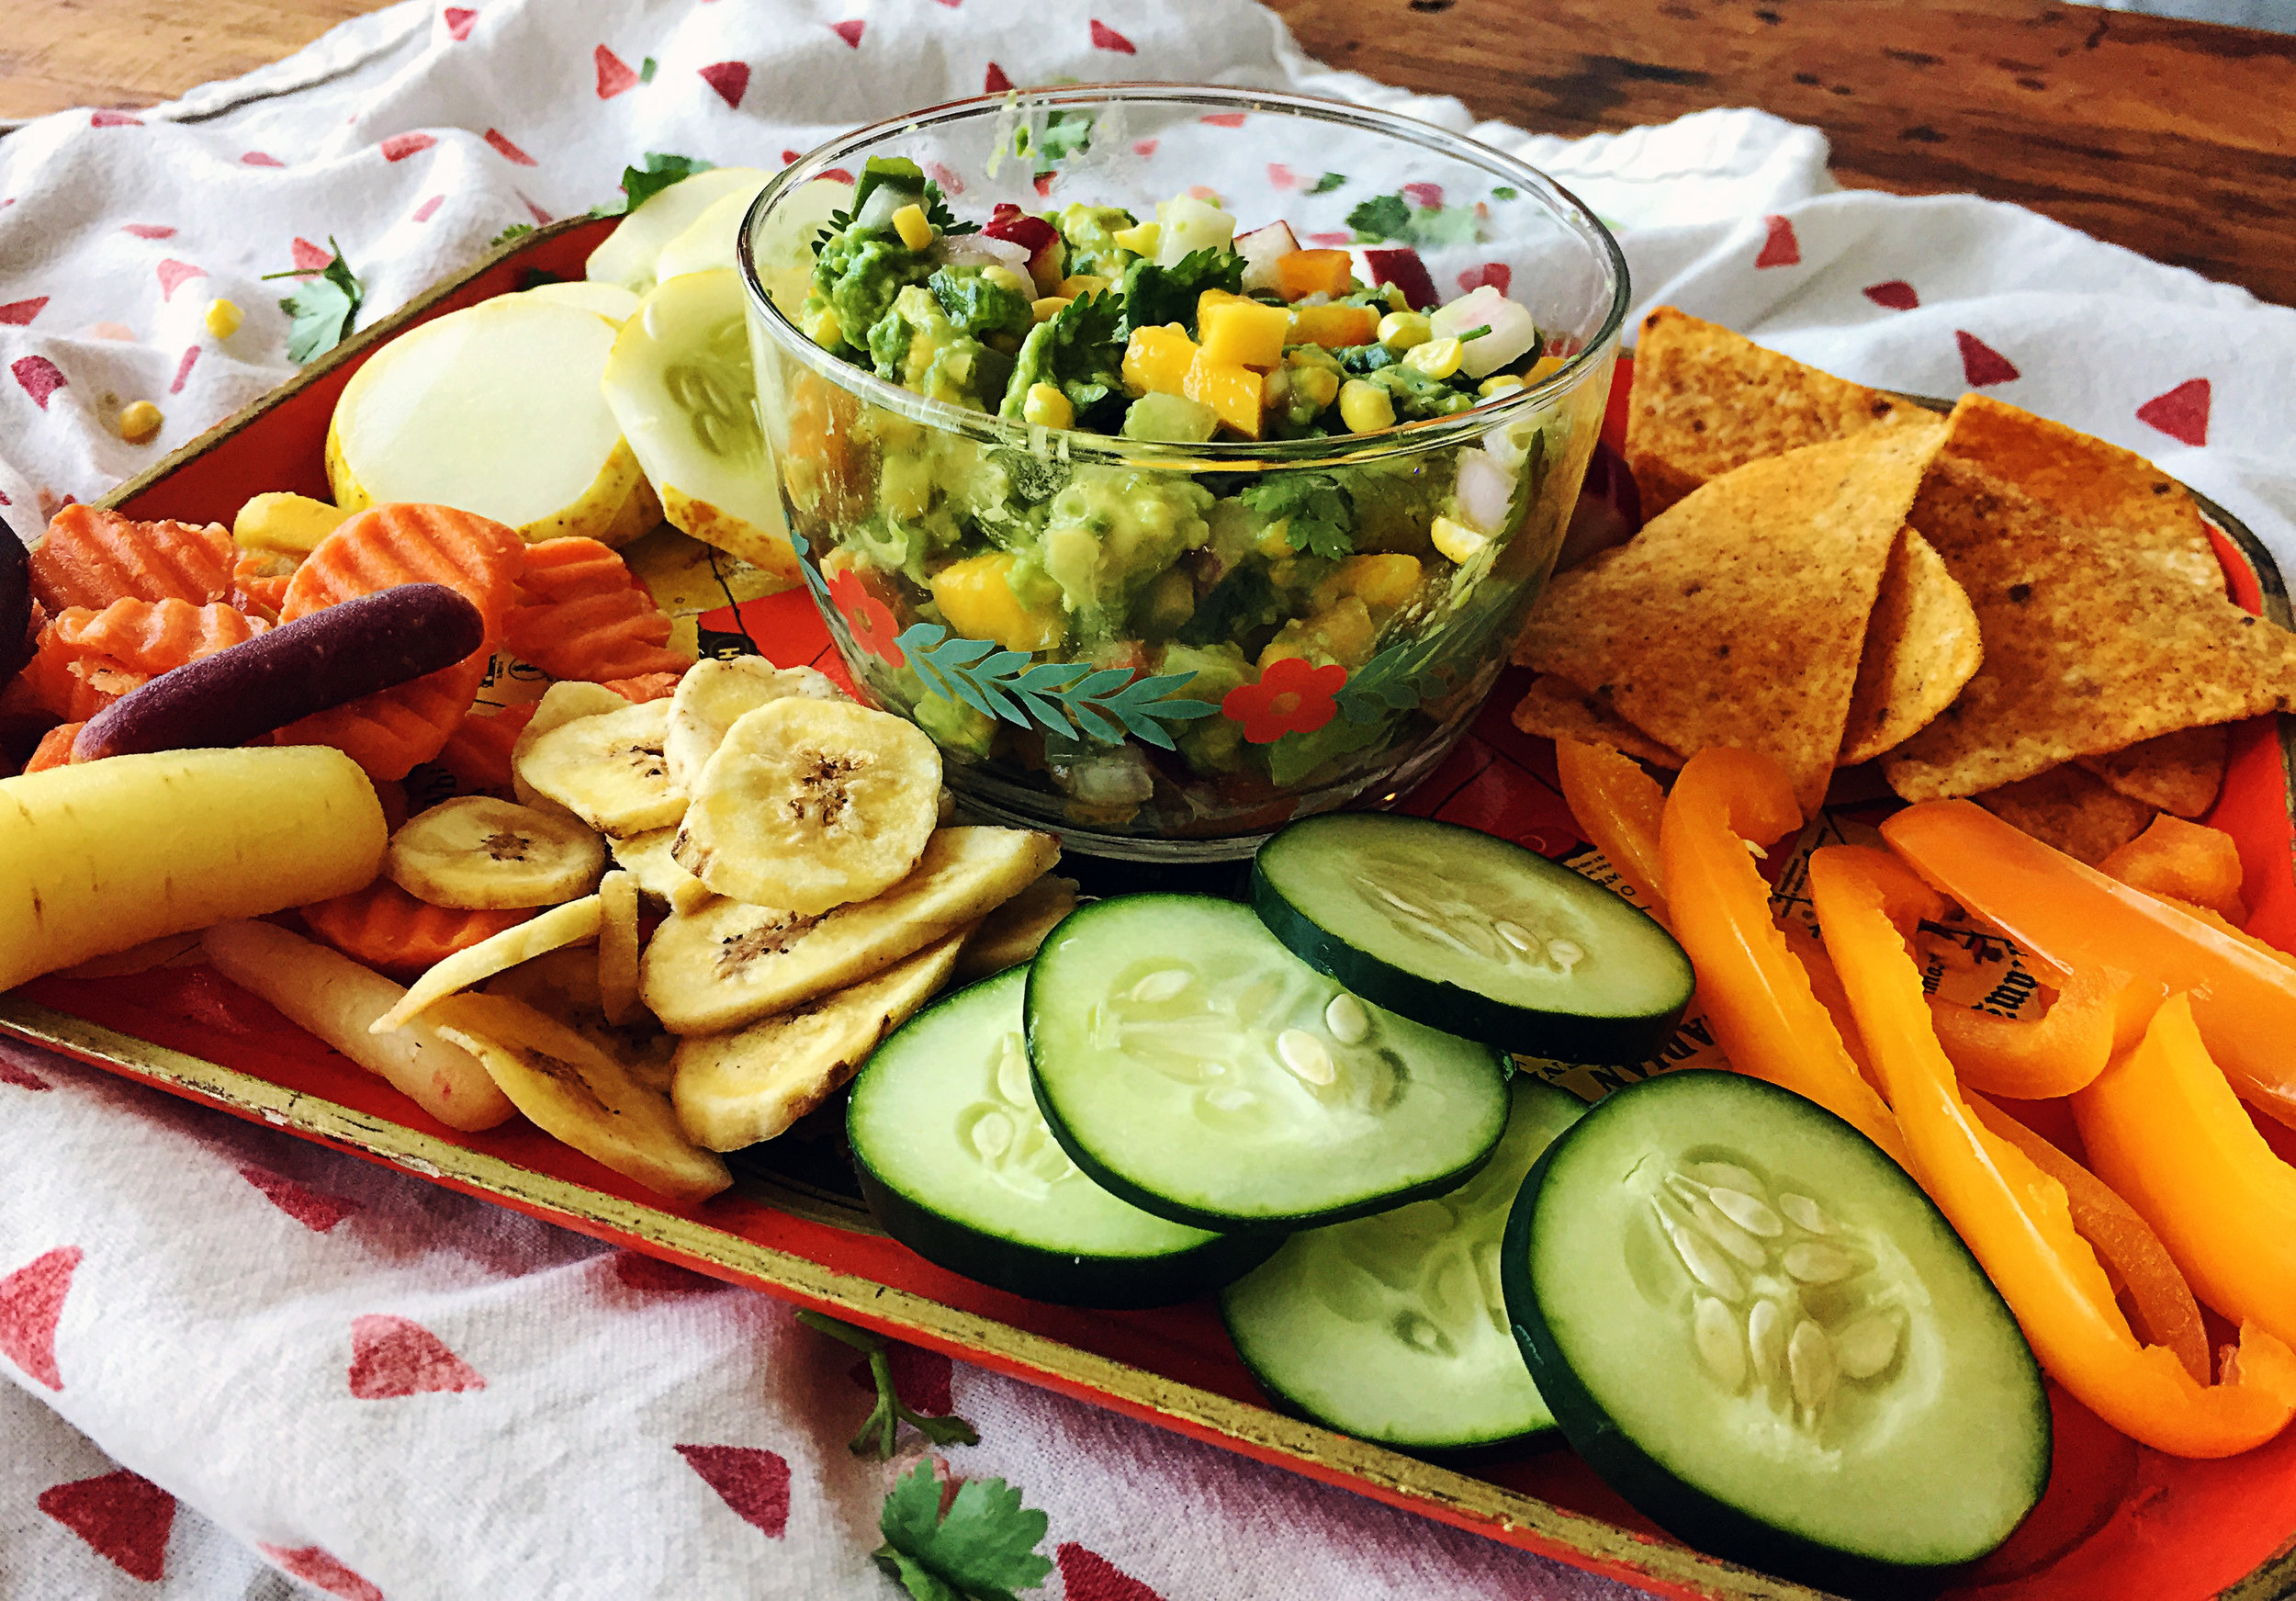 5. Serve guac in a nice dish with a spread of crudite. Some of my favorites are up above and provide a wonderful spread of healthy snacks to eat this treat. It is pretty tasty on its own as well.